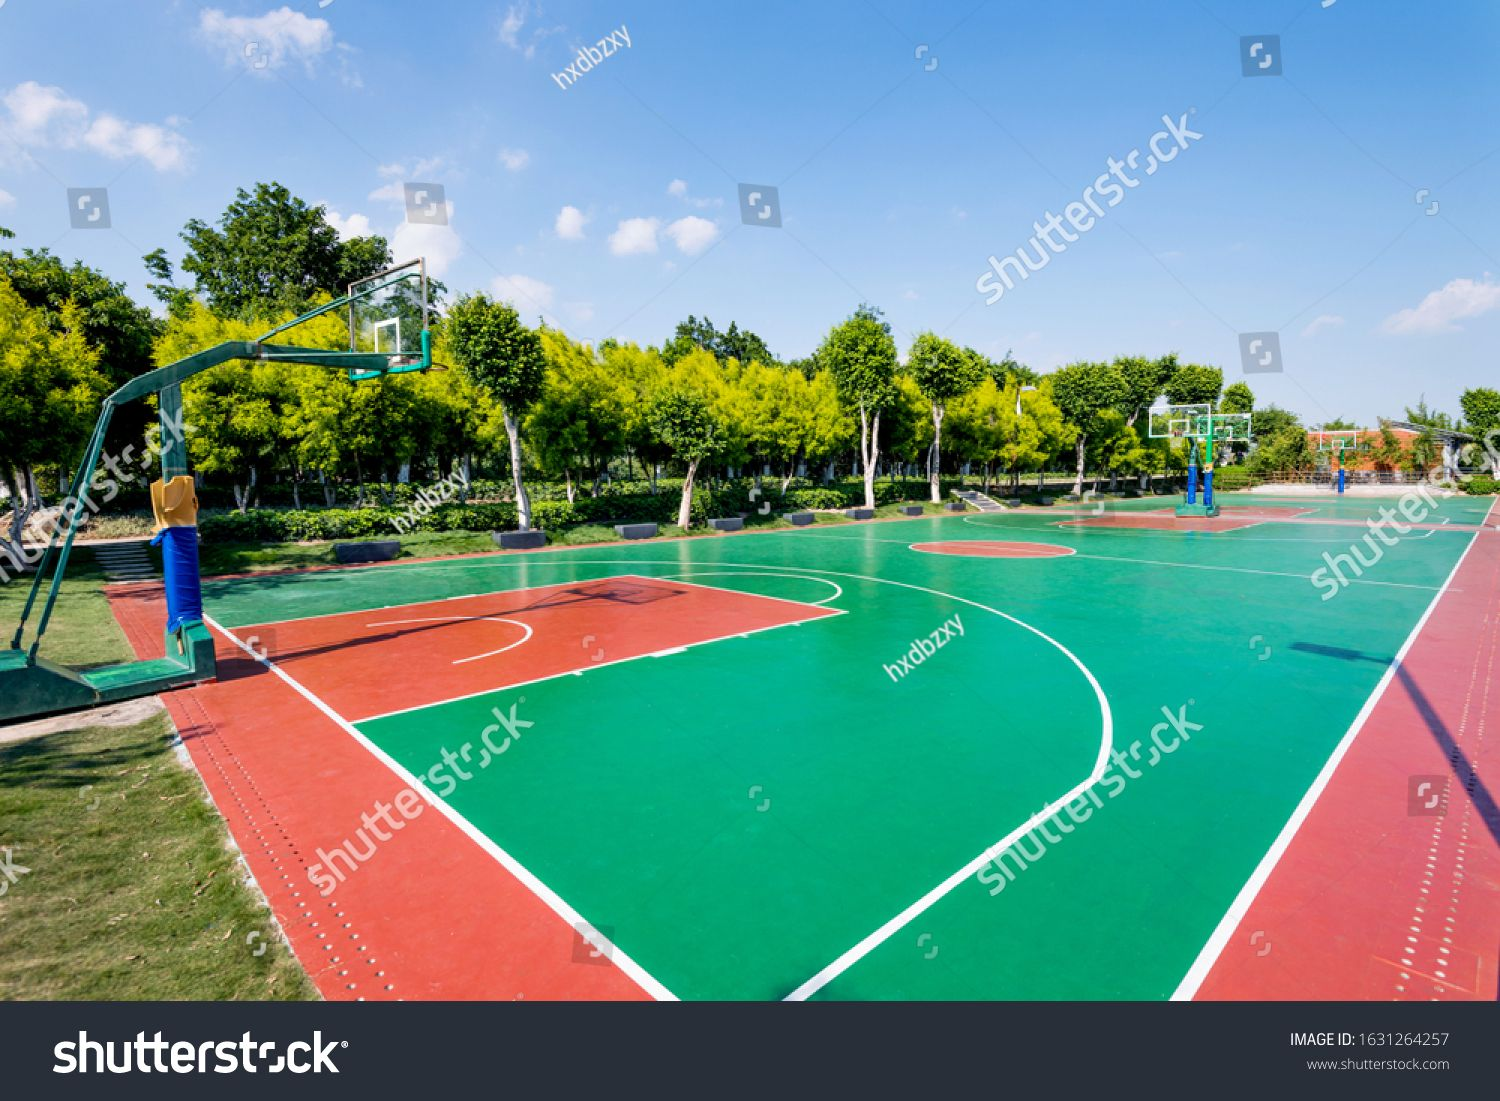 Outdoor Basketball Court With Nobody Ad Ad Outdoor Basketball Court In 2020 Outdoor Basketball Court Football Ball Outdoor